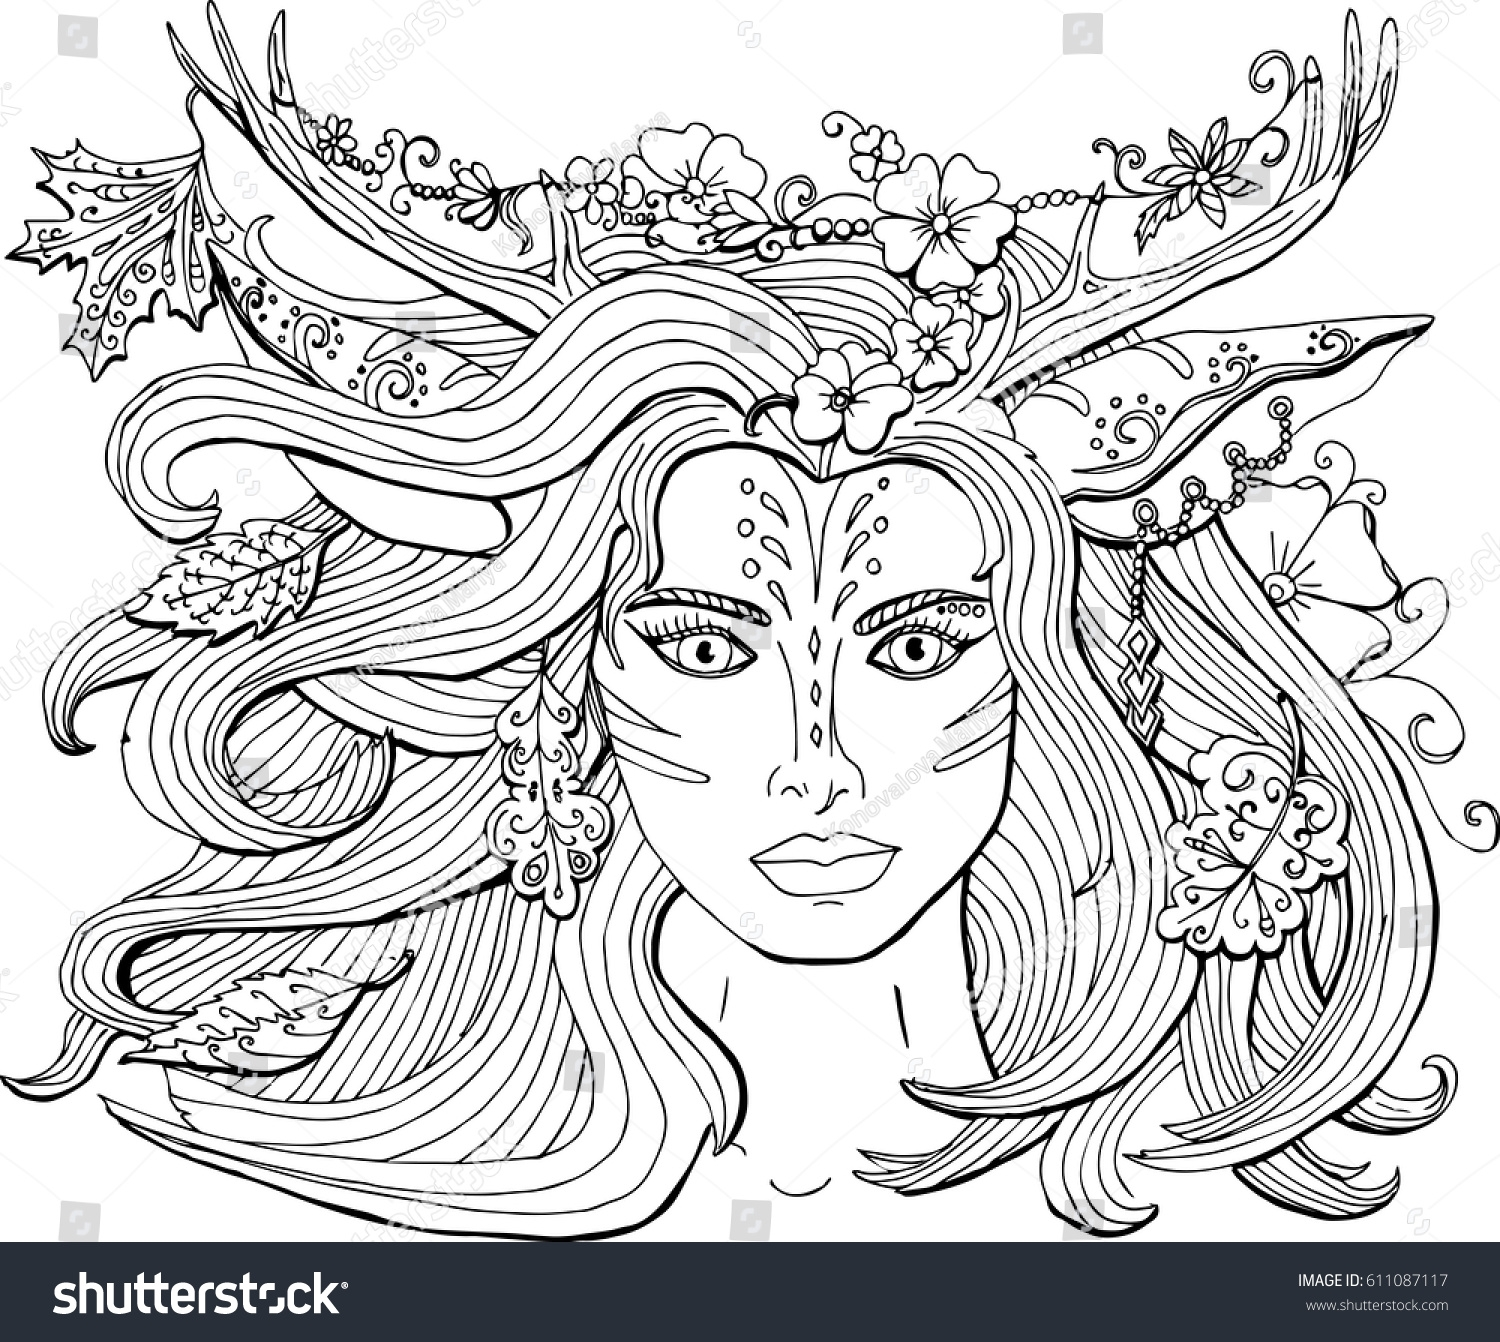 1500x1342 Fashion Coloring Pages Printable Dringrames Download